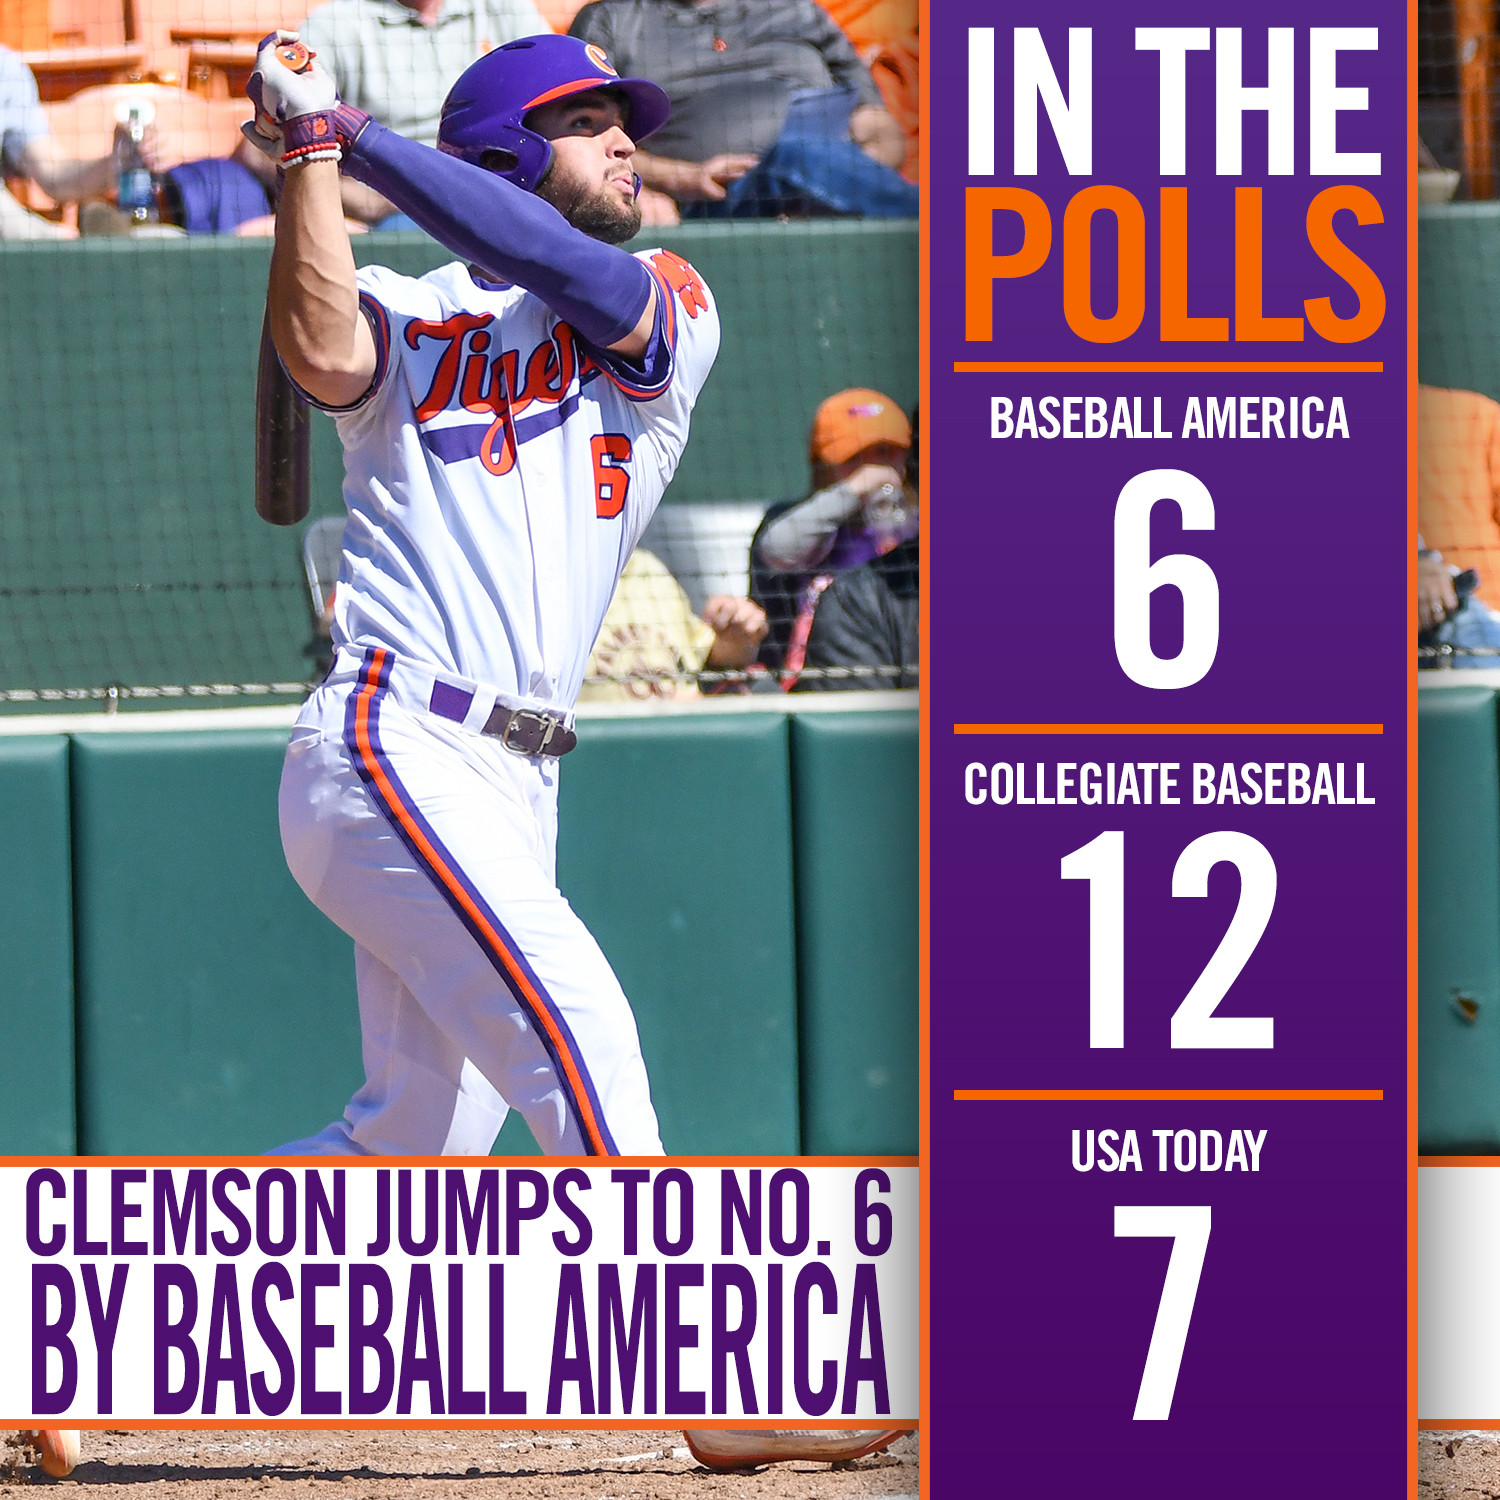 Tigers Move Up in Polls